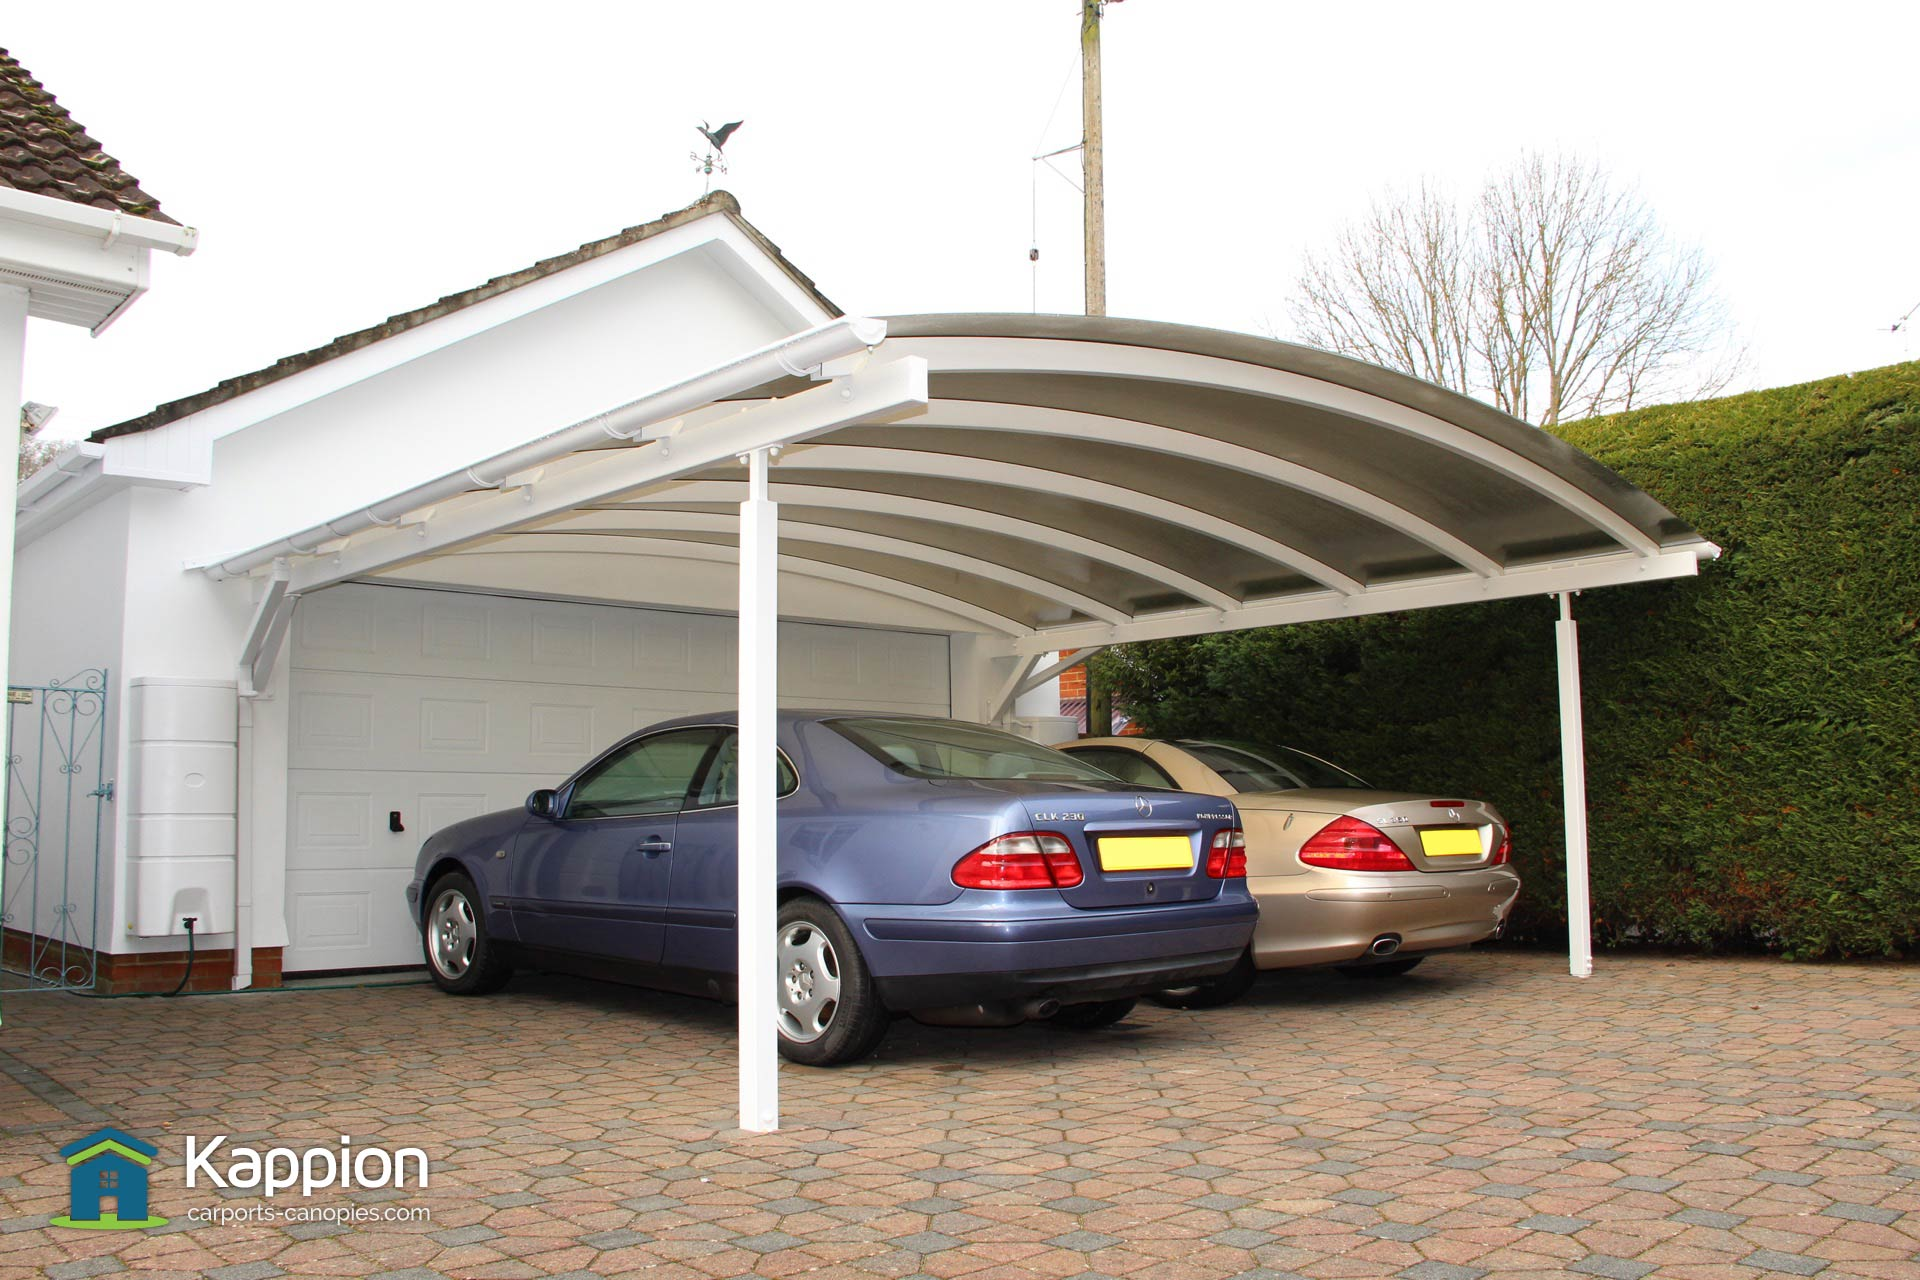 double carport the ultimate two car canopy kappion. Black Bedroom Furniture Sets. Home Design Ideas